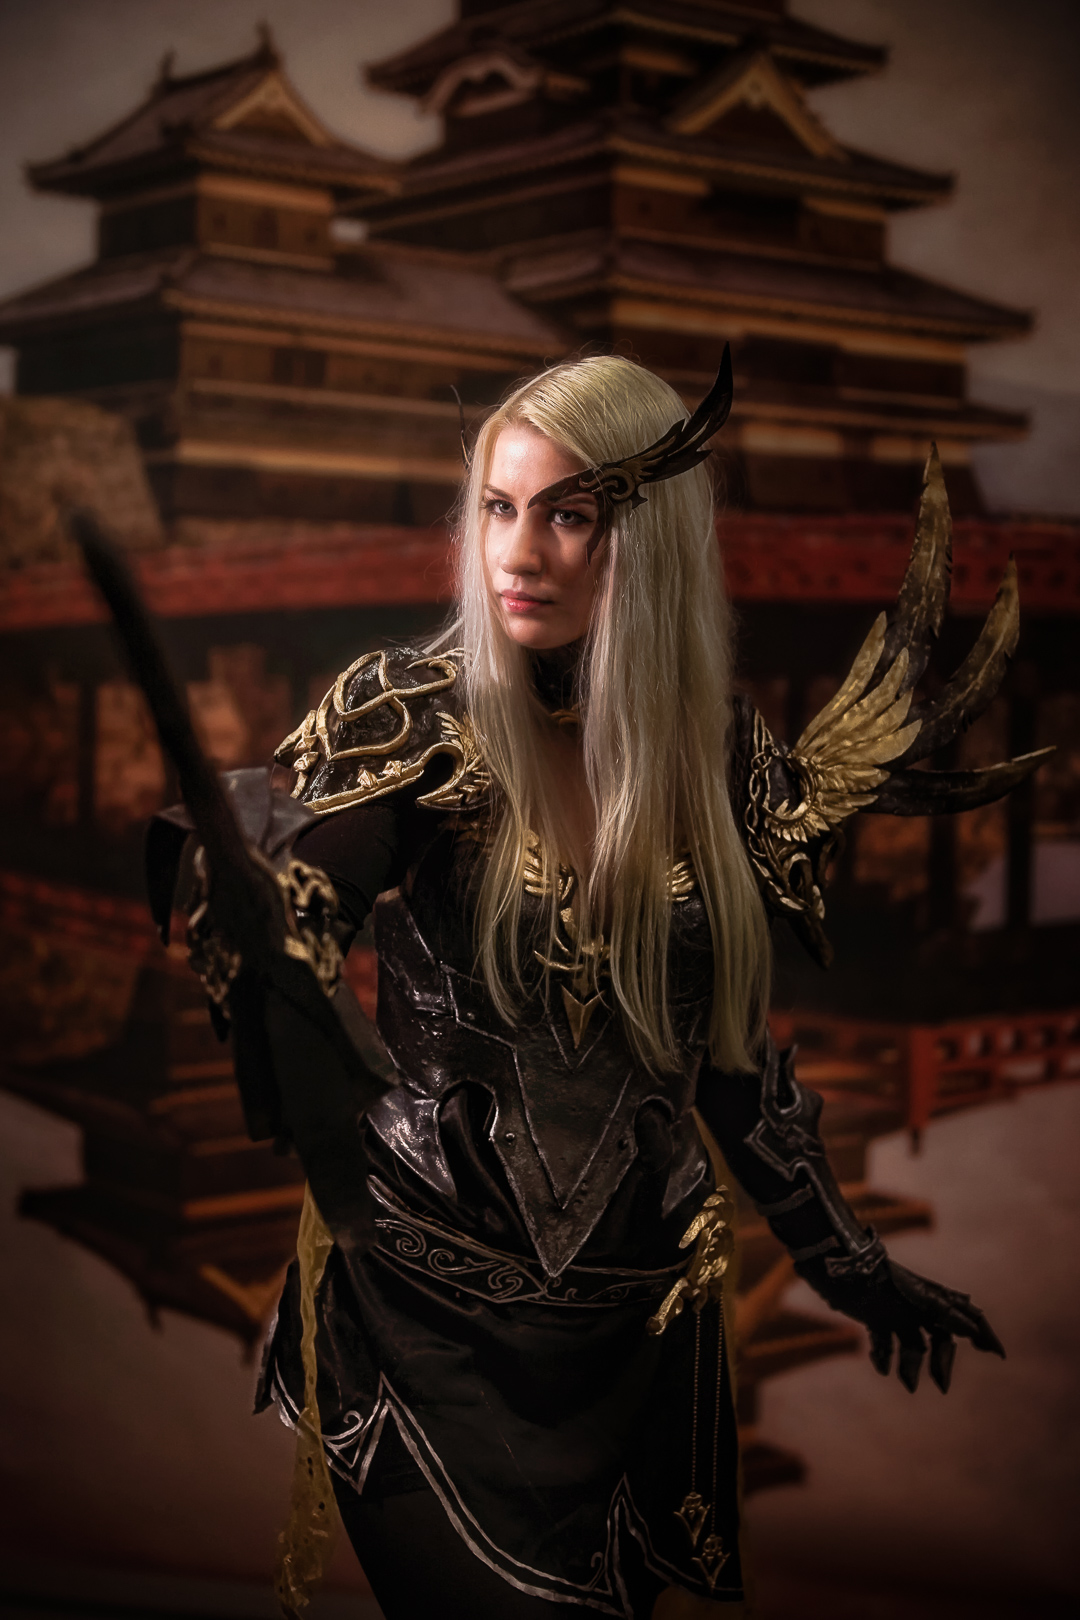 - My first EpicCon - Game: Aion Cosplay: Asmodian Armor Cosplayer: @enyu_cosplay - I am glad to have decided to check out another Con in Germany and I must say it was awesome. Great location, beautiful concert hall, unlimited space for shooting and chilling. And of course the greatest cosplay artists you can imagine... - Thanks also to @cocoascosplay and @sheeta_cosplay for their company and time! I hope they like the results :) - If you want to follow my other voyages in photography at Instagram, please check my other feeds :) - Nature and Cities: @dont_fade_away_photography  - People & Portraits (my new one): @dont_fade_away_photography_ppl